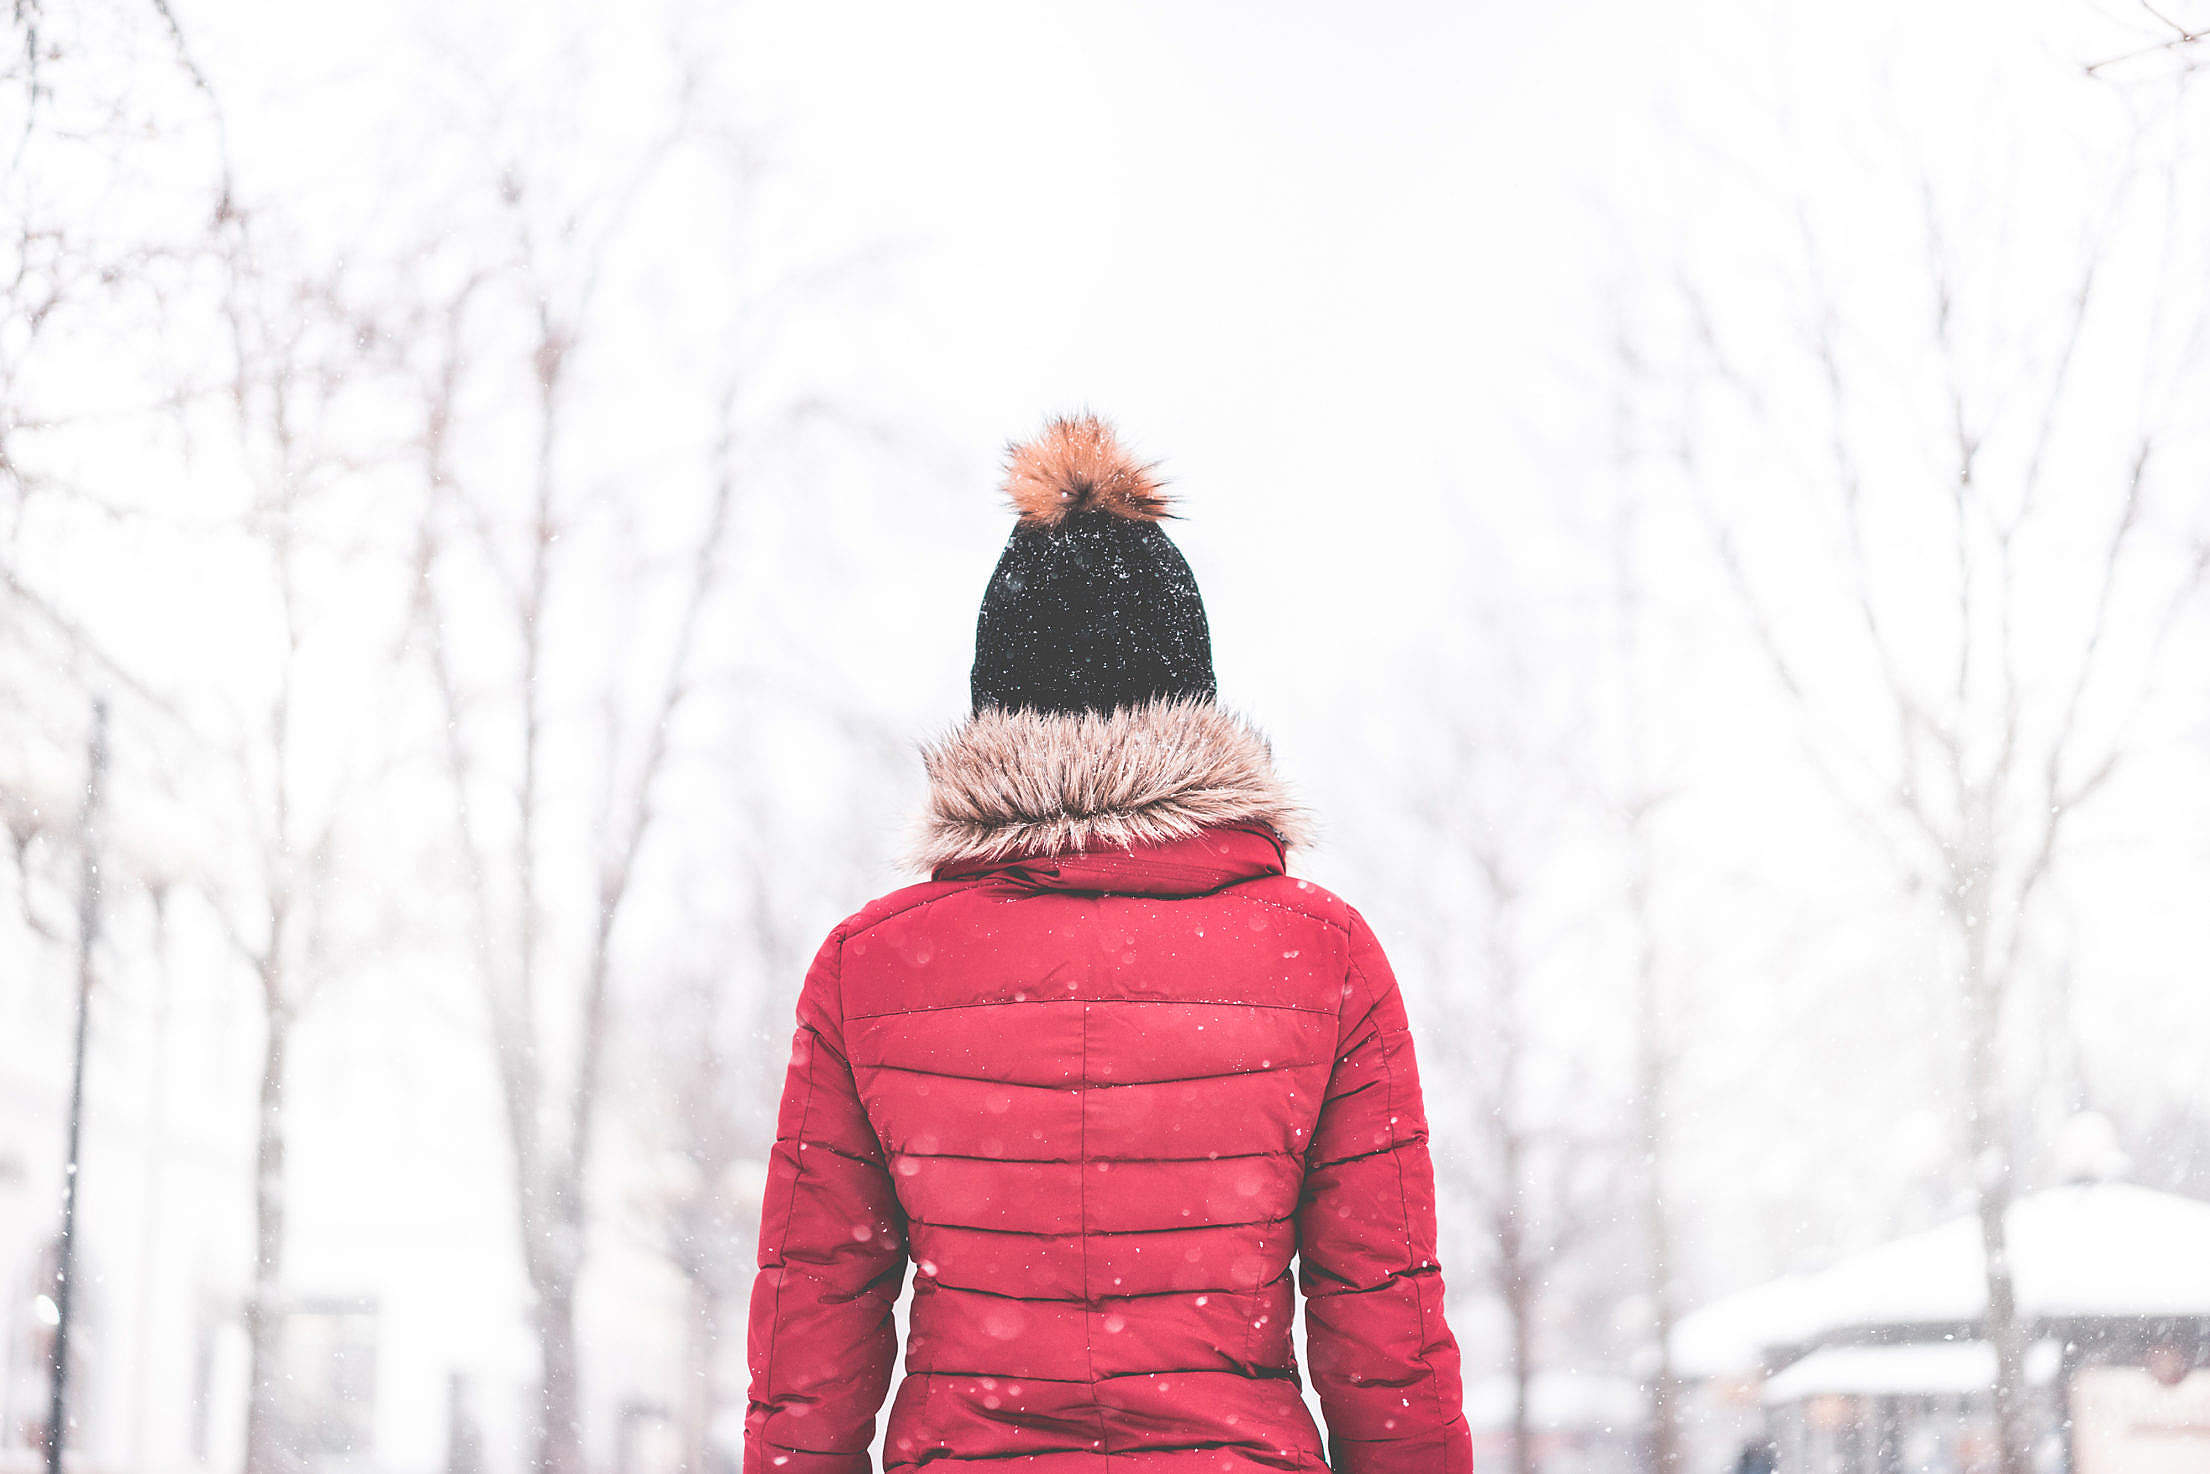 Woman Standing in The Middle of The Park in Snowy Weather #2 Free Stock Photo